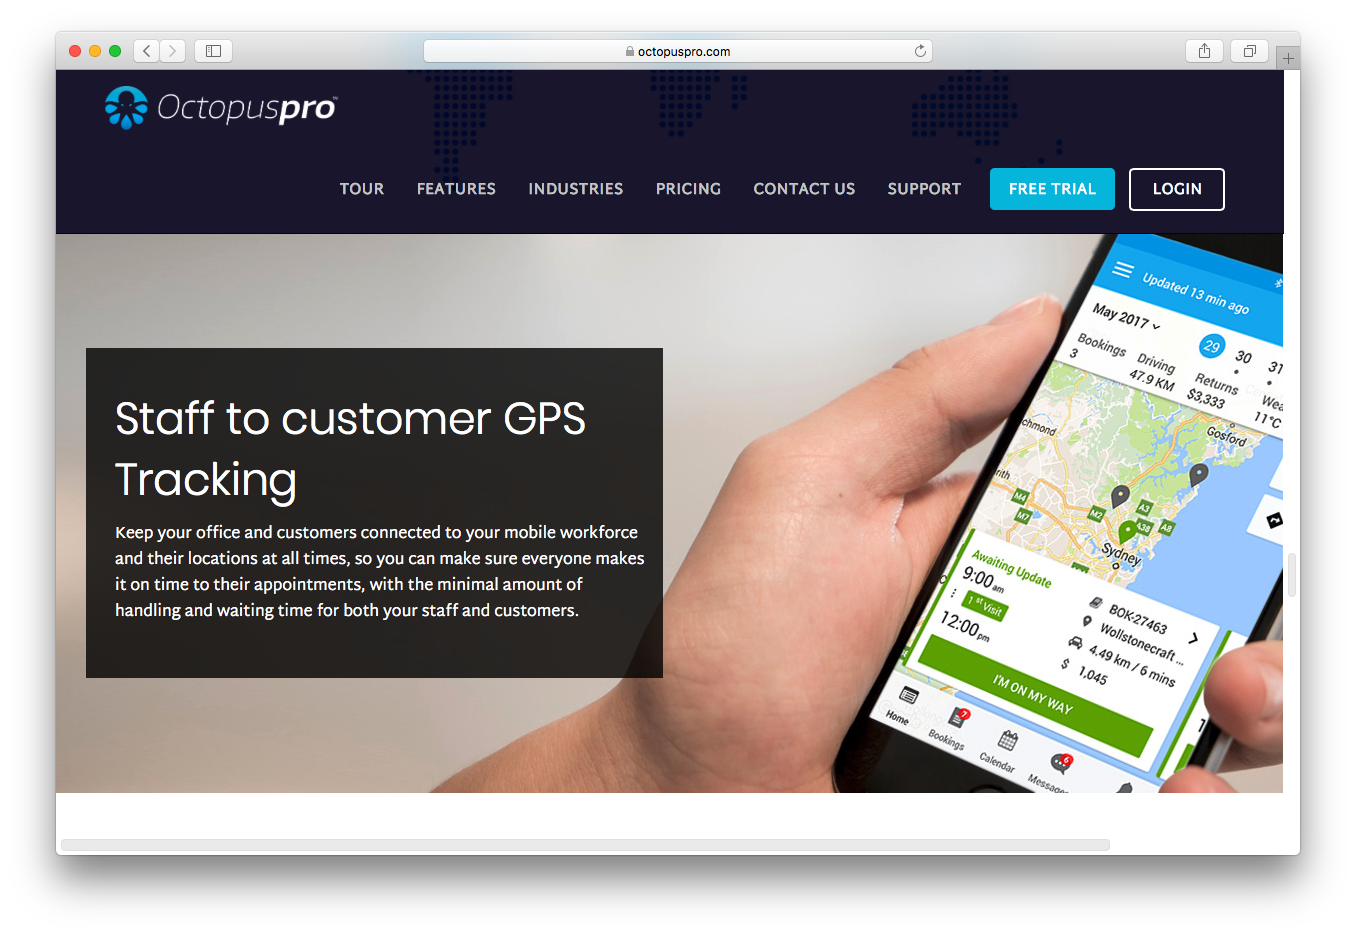 OctopusPro staff customer gps tracking mobile workforce appointments